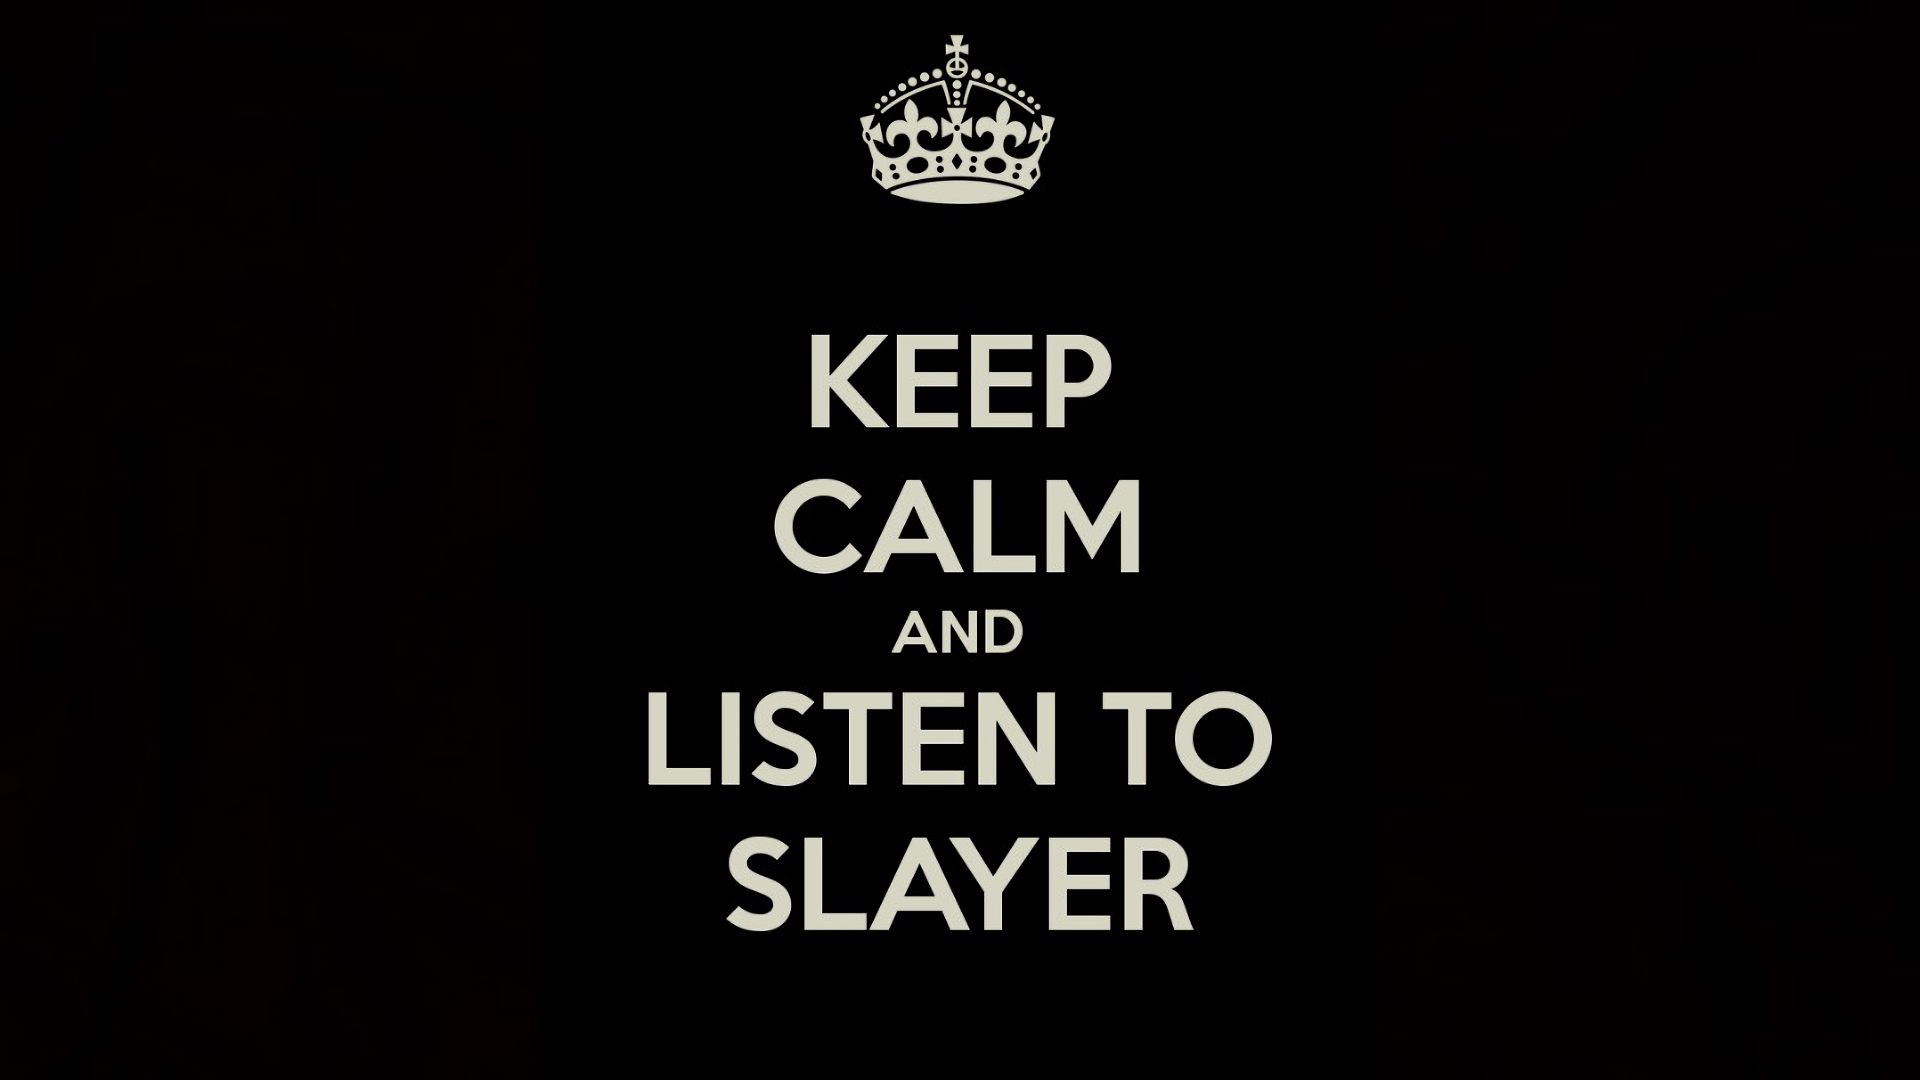 Keep Calm And Listen To Slayer Hd Wallpaper Background Image